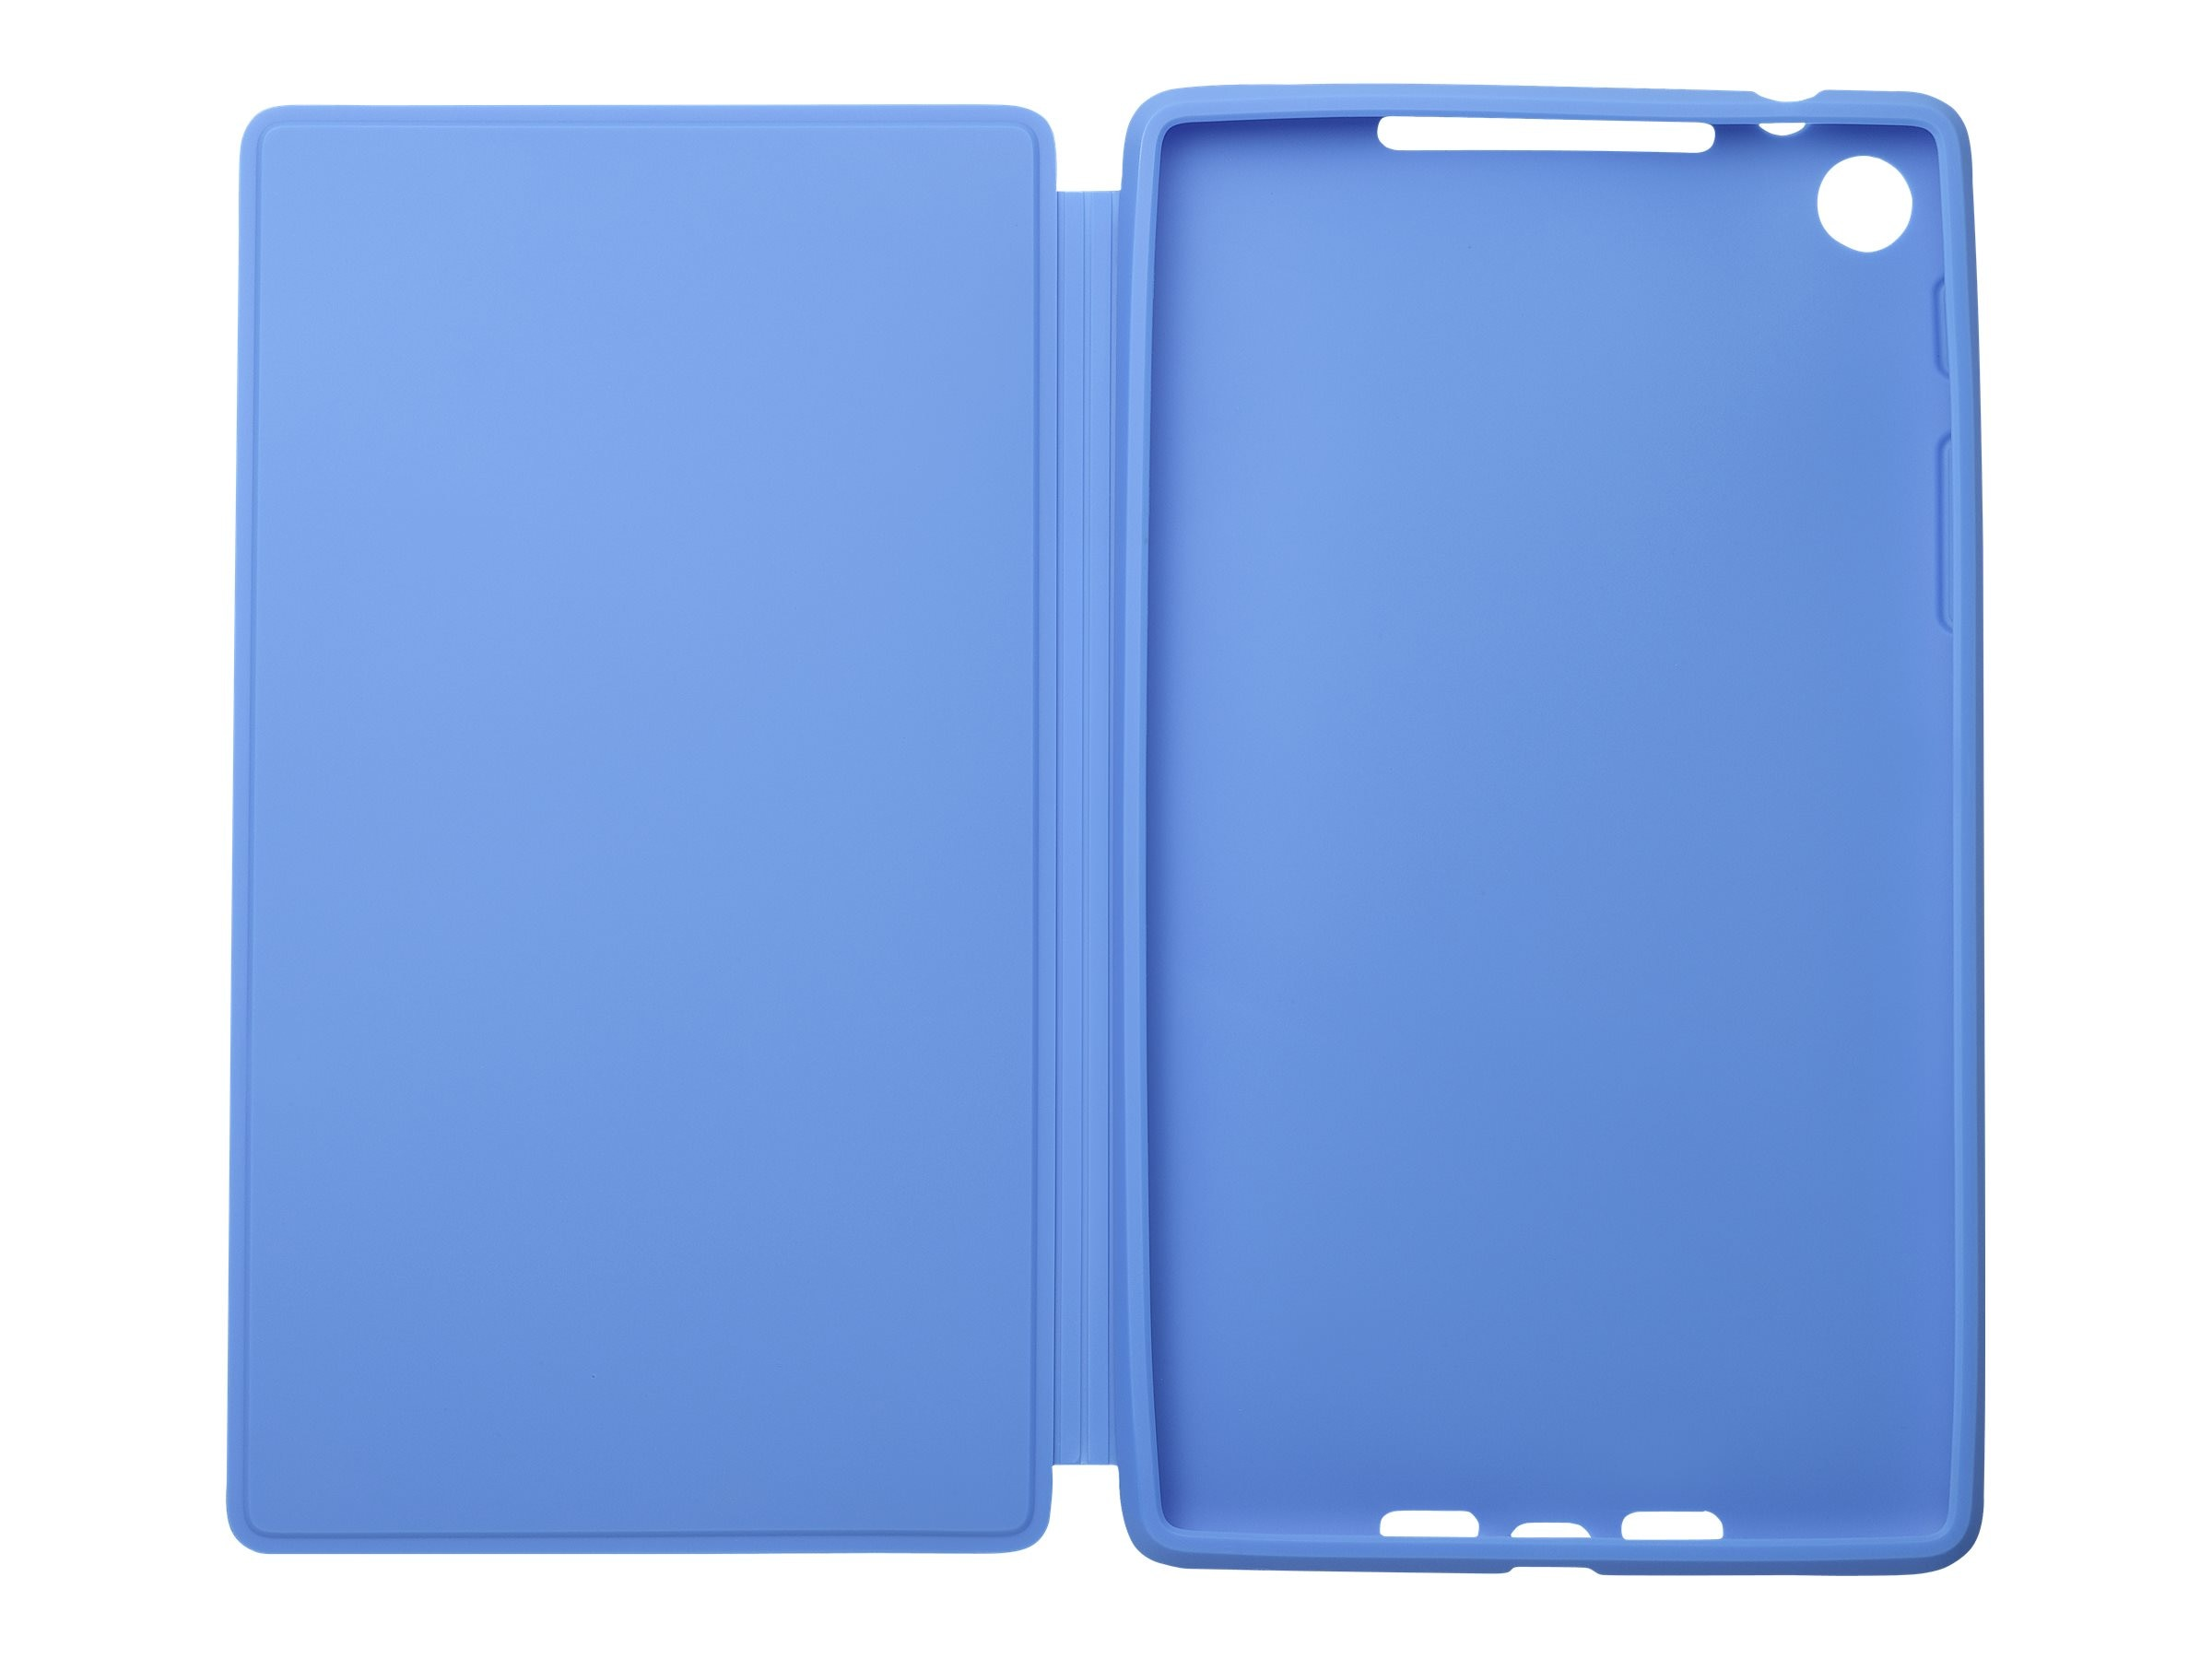 Asus Travel Cover for 2013 Nexus 7, Light Blue